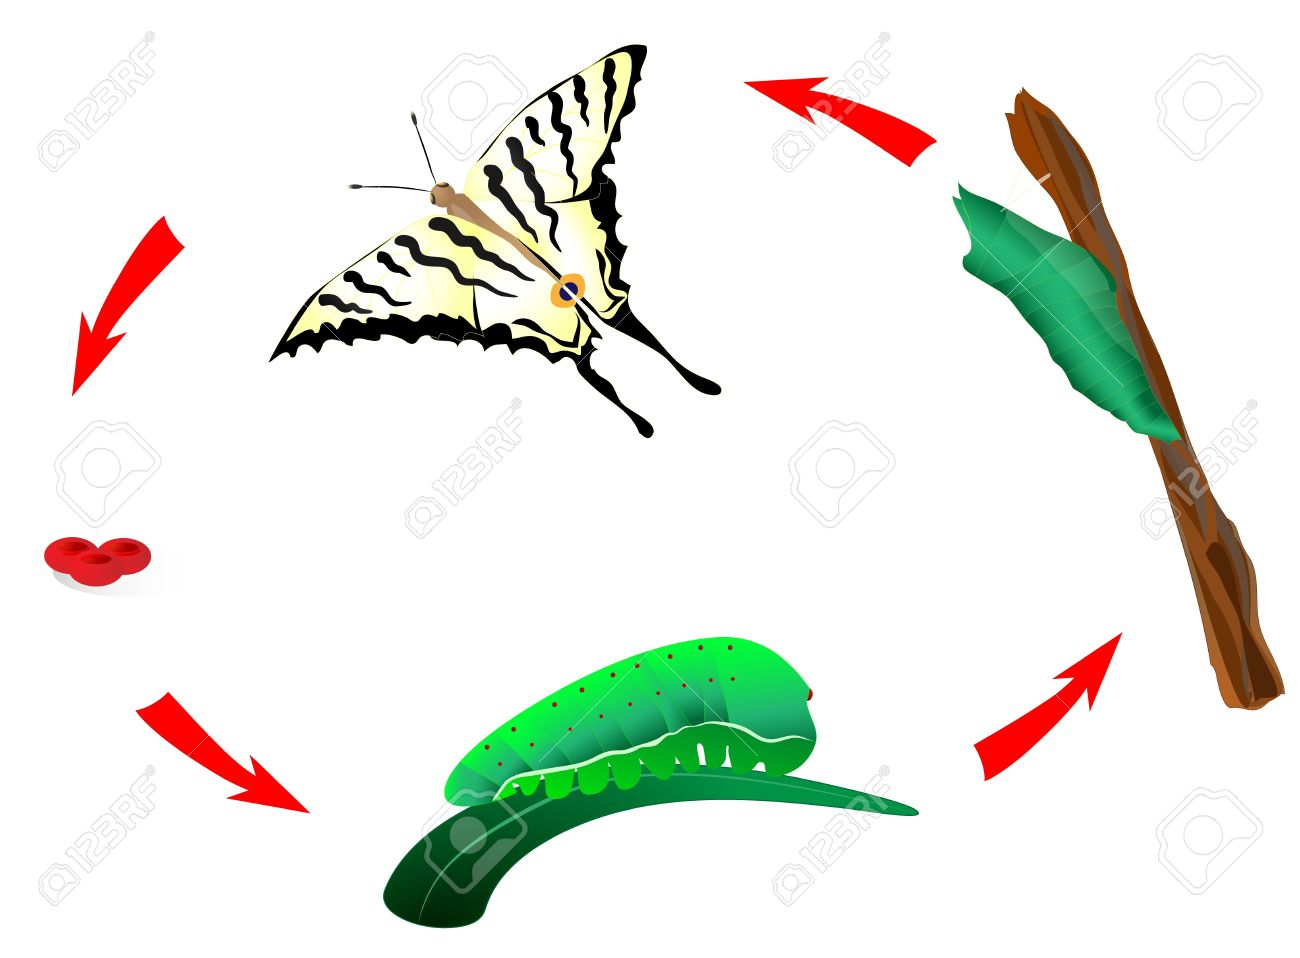 Butterfly Habits Life Cycle From Caterpillar To Butterfly.